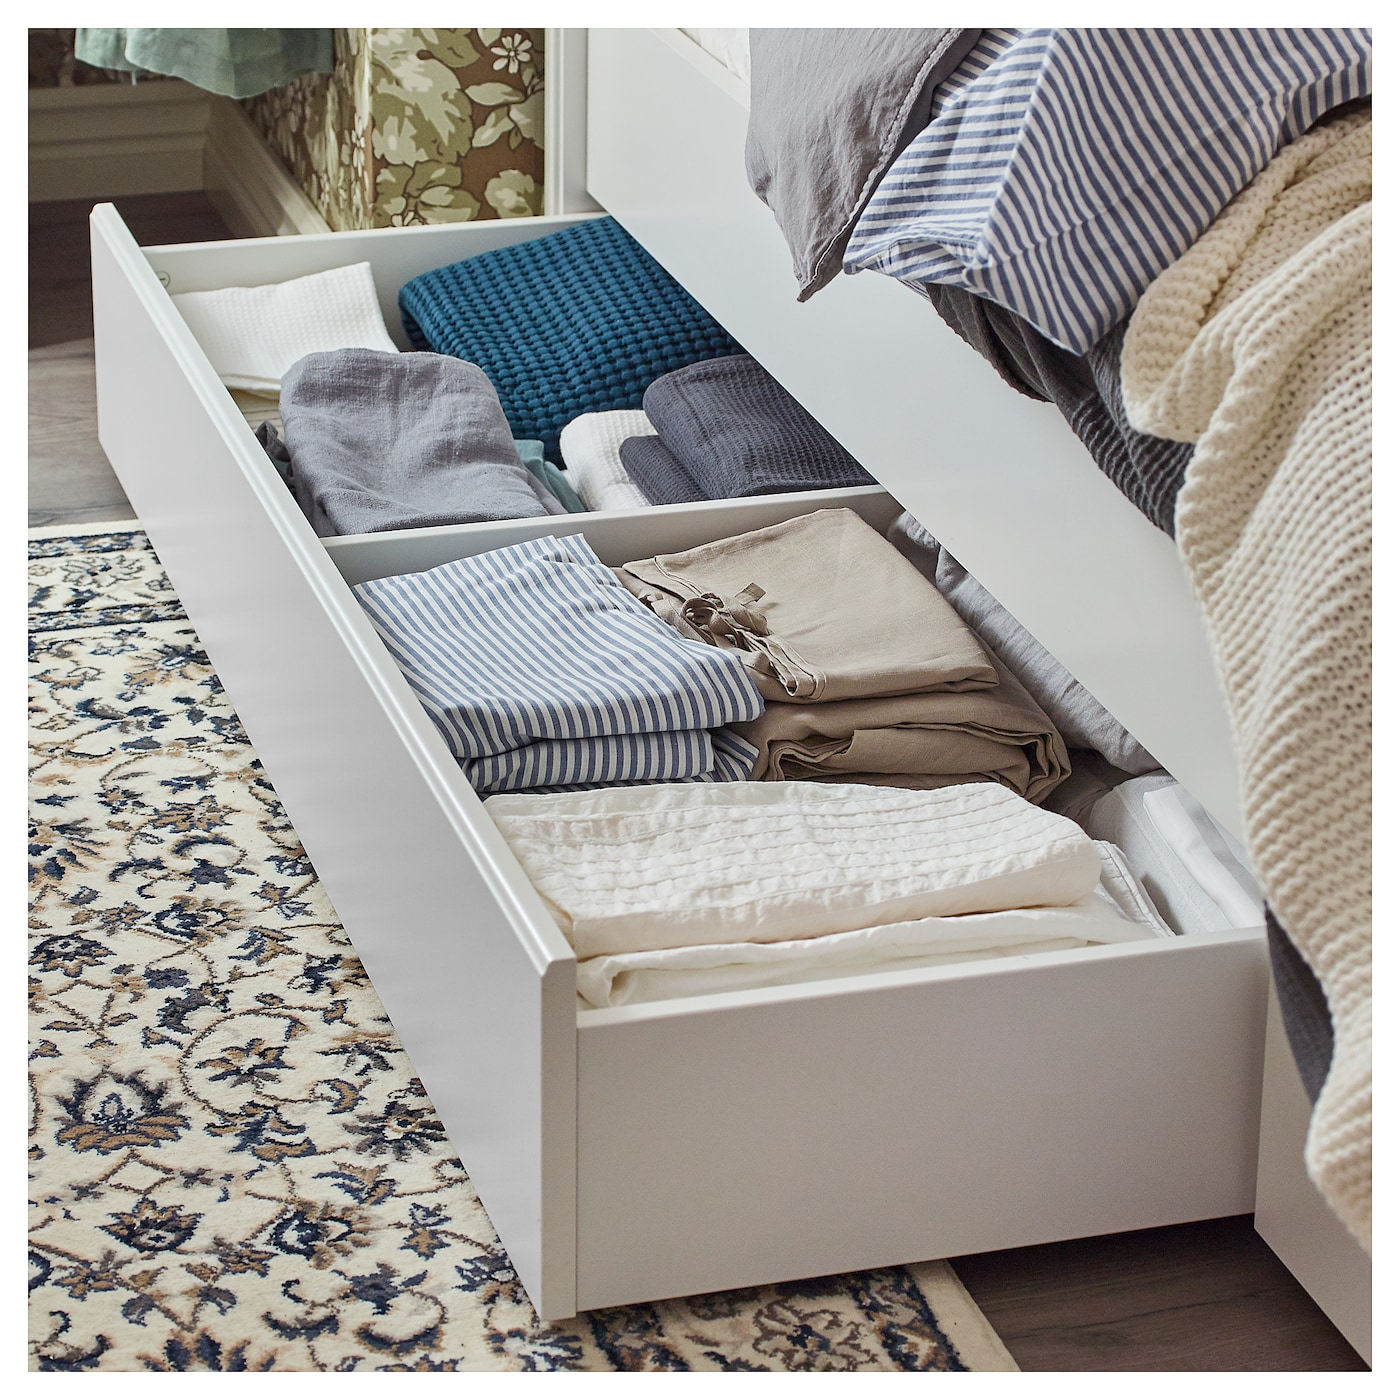 Adjustable Bed Base >> SONGESAND Bed frame with 4 storage boxes White/luröy Standard Double - IKEA